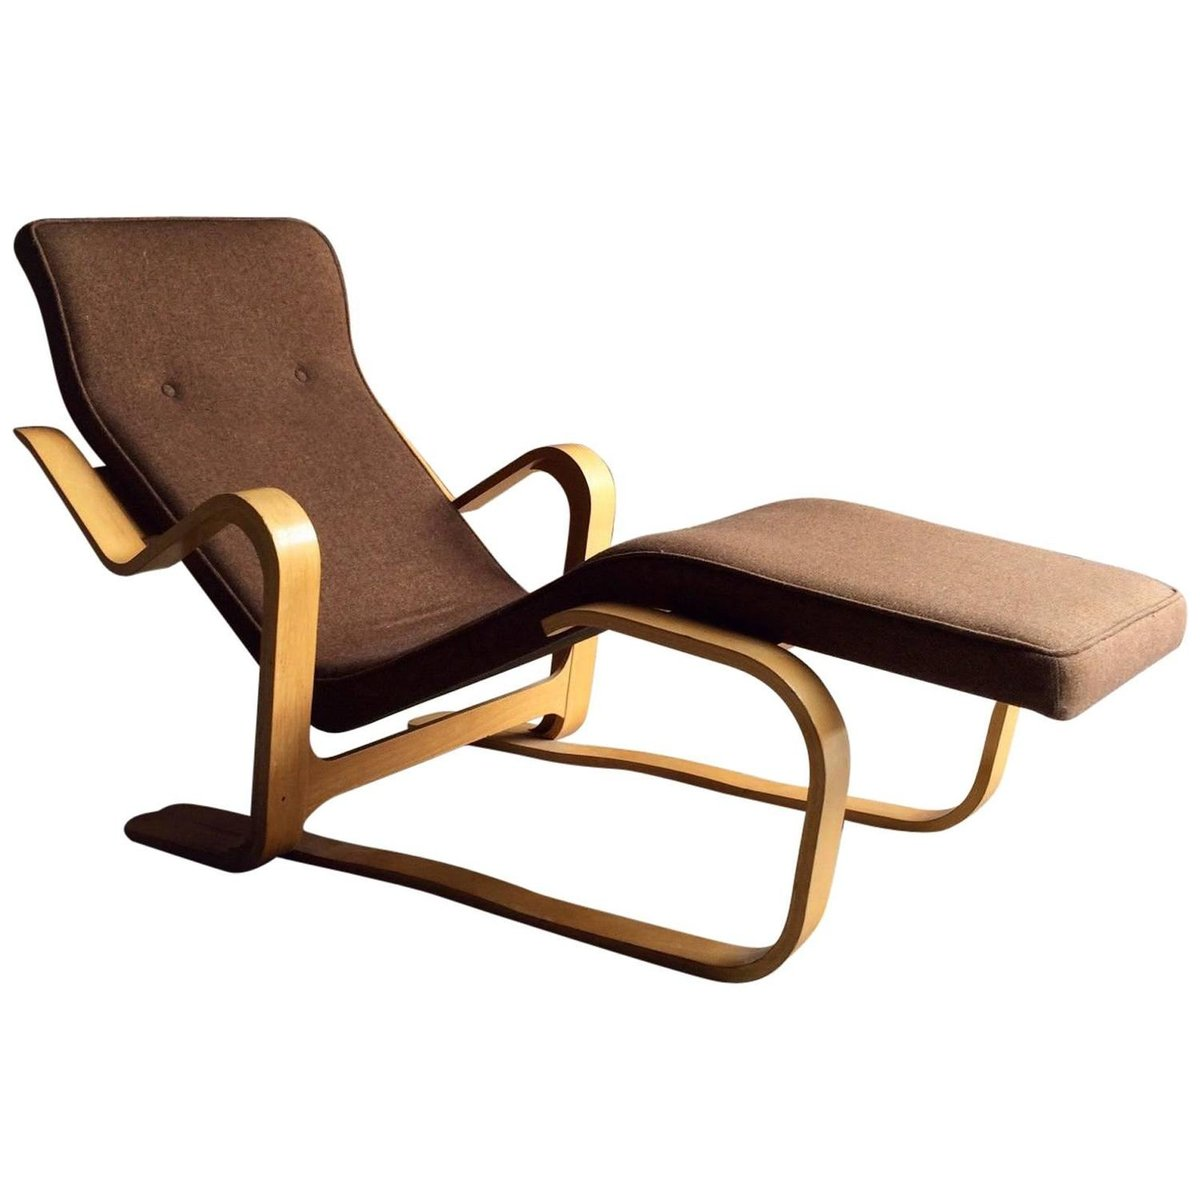 mid century long chair by marcel breuer 1970s for sale at. Black Bedroom Furniture Sets. Home Design Ideas